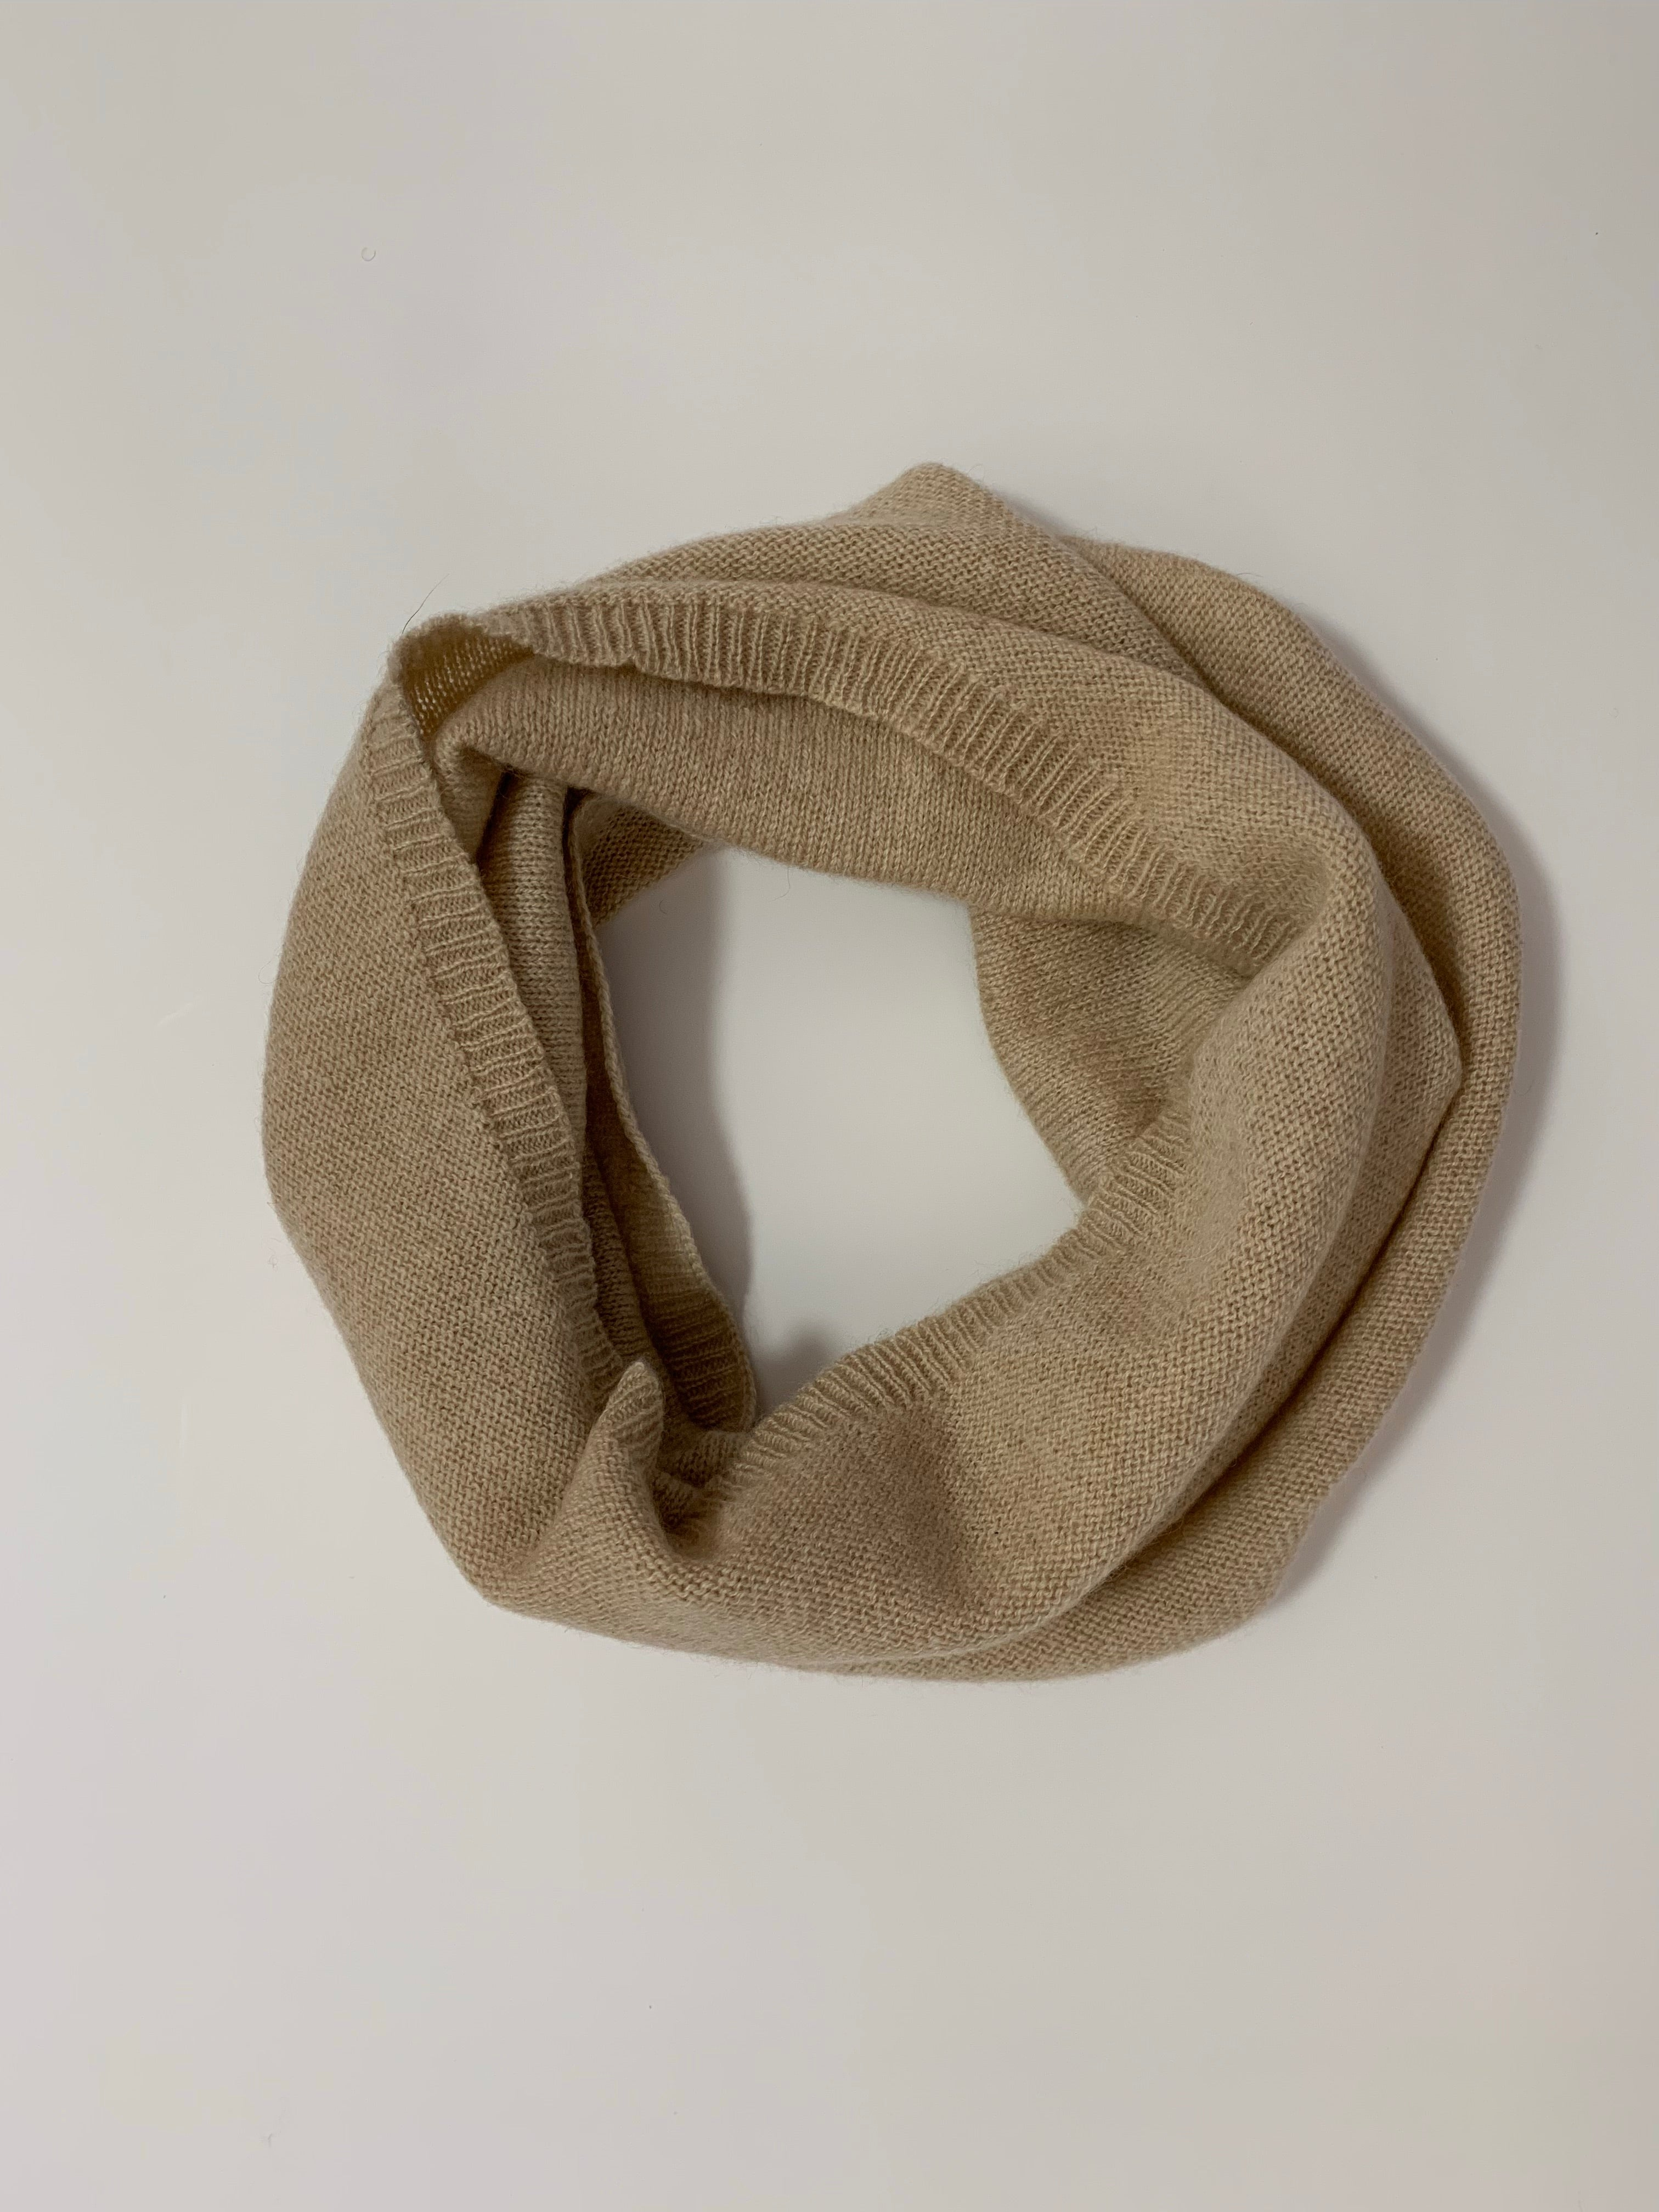 Unisex 100% Cashmere Neck Warmer - Made in Mongolia